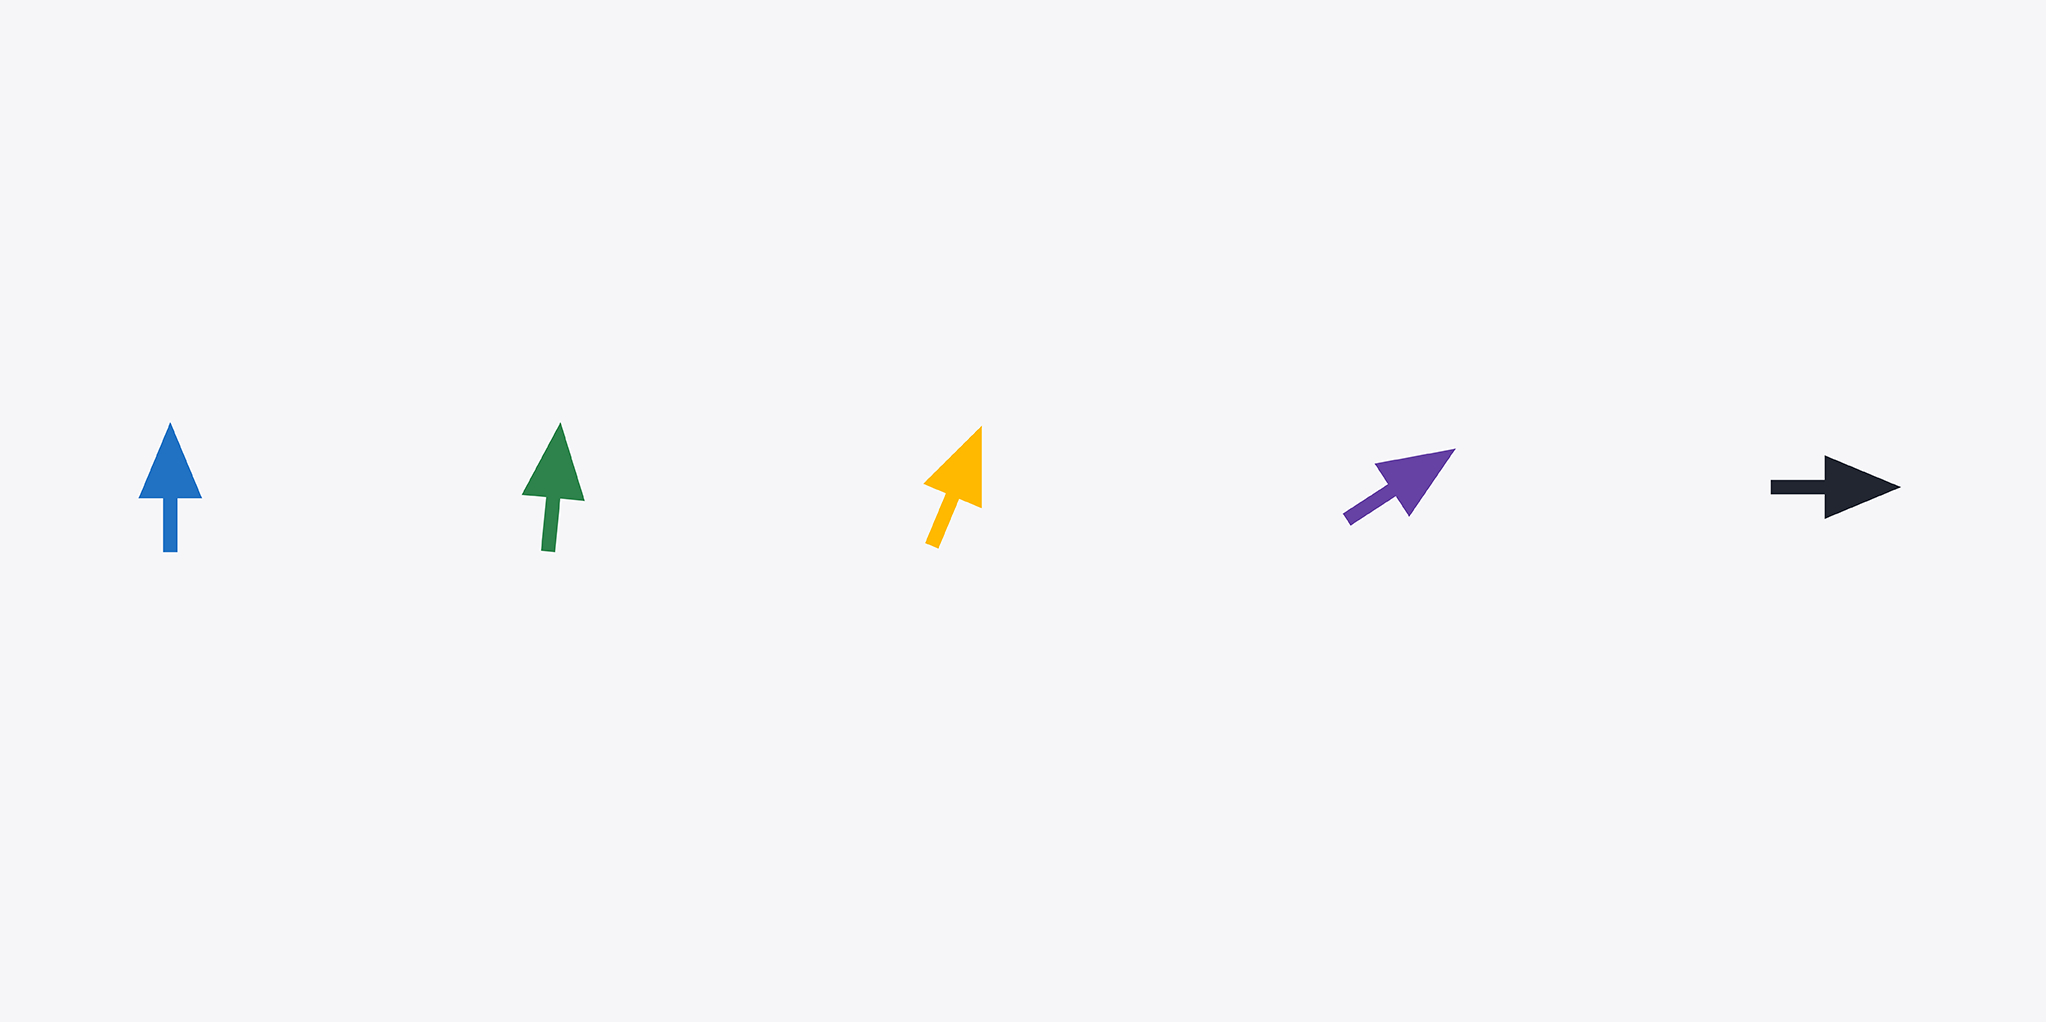 Five colorful arrows in a row. Equally spaced and pointing up, starting from the left. Each arrow tip then pivots slightly to the right until the final arrow is pointing due right.